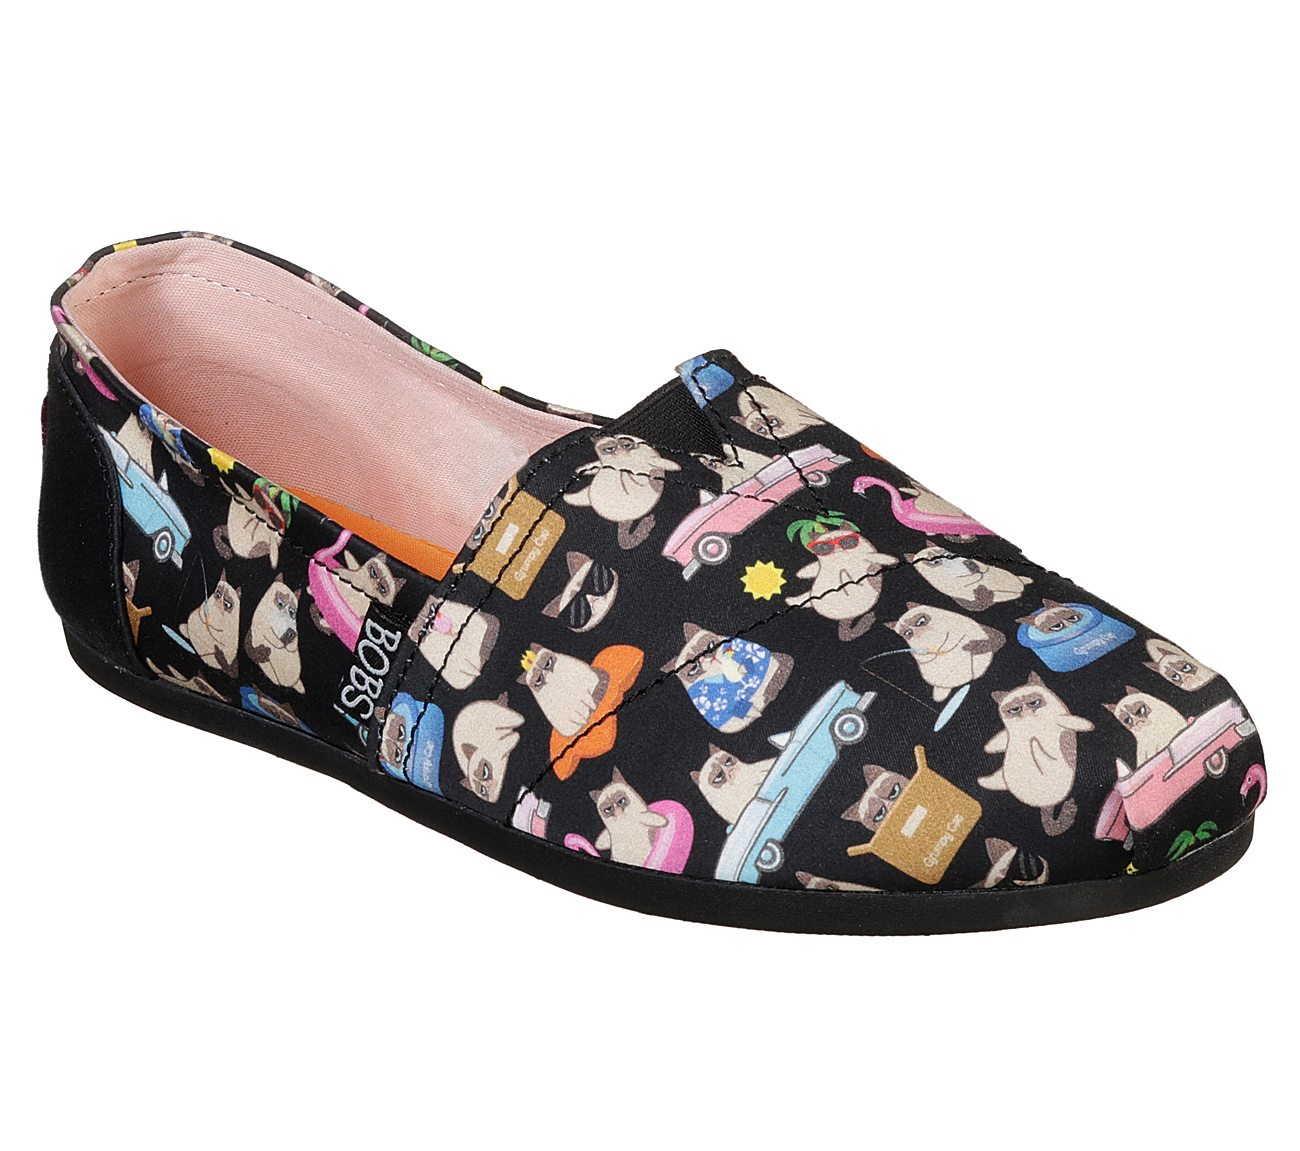 Skechers Grumpy Cat x BOBS Plush - Grumpy Vacay Shoes